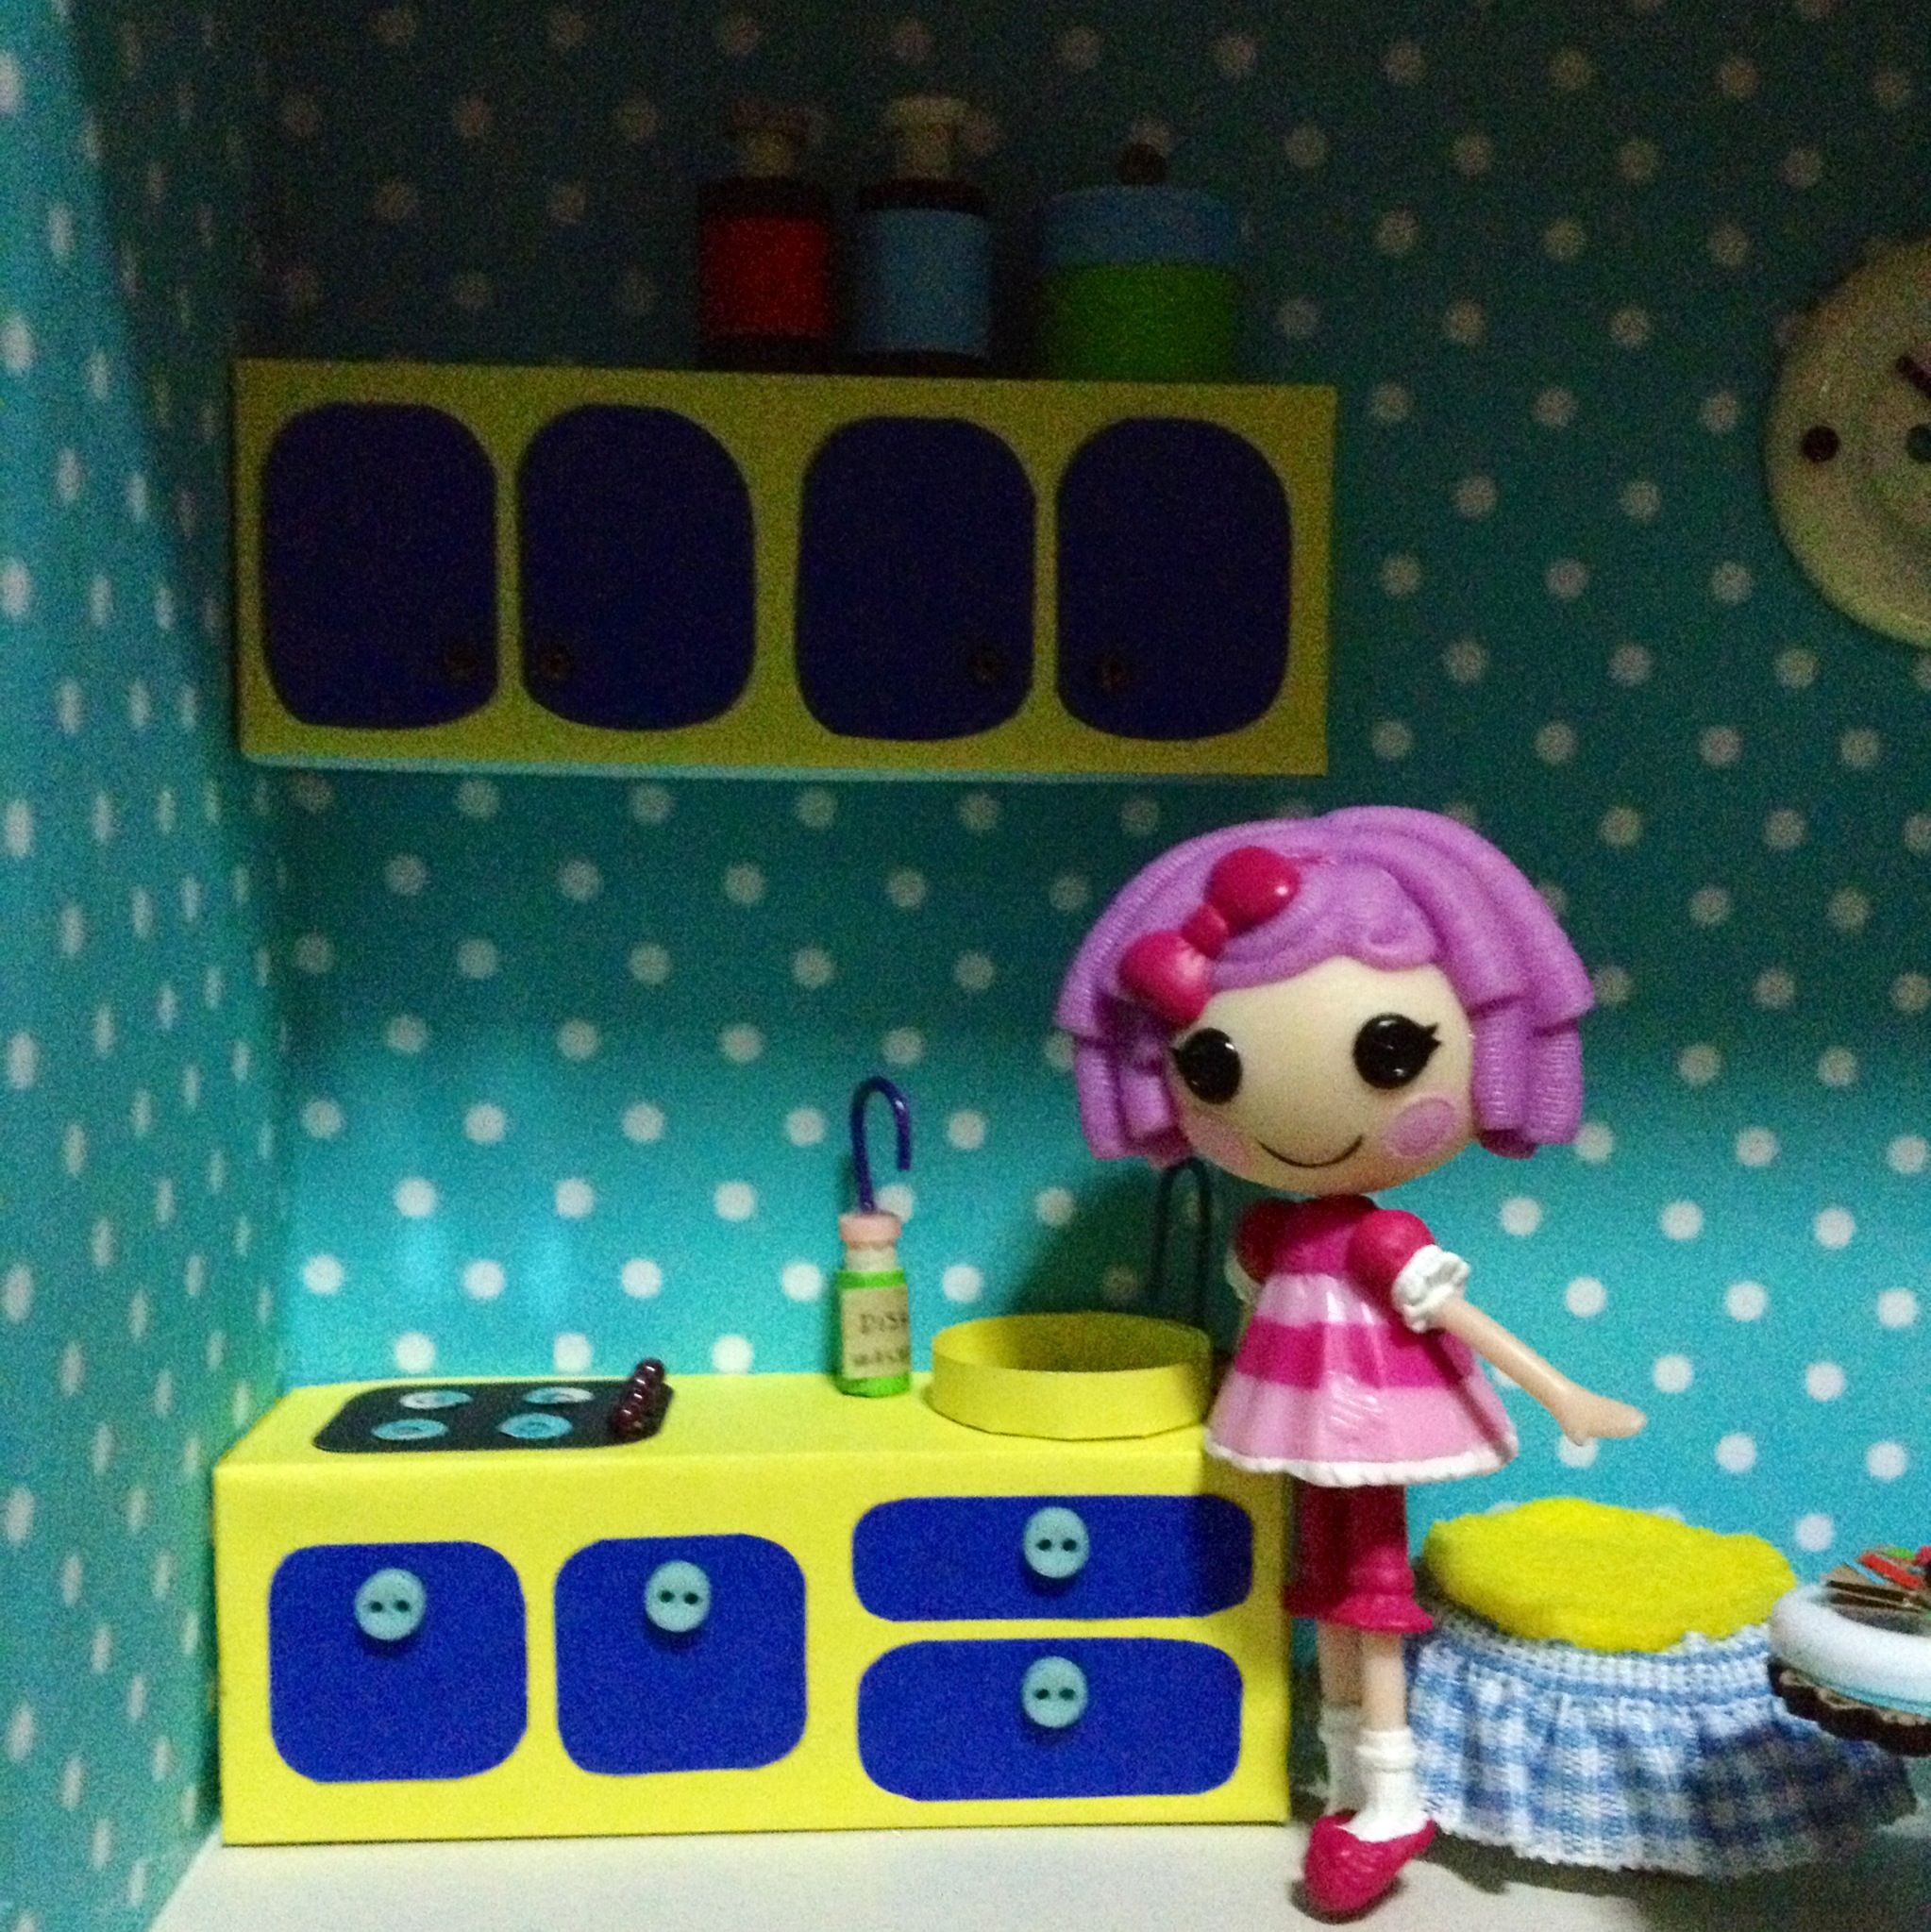 Kitchen cabinet for my mini lalaloopsy dollhouse | My happy crafts ...